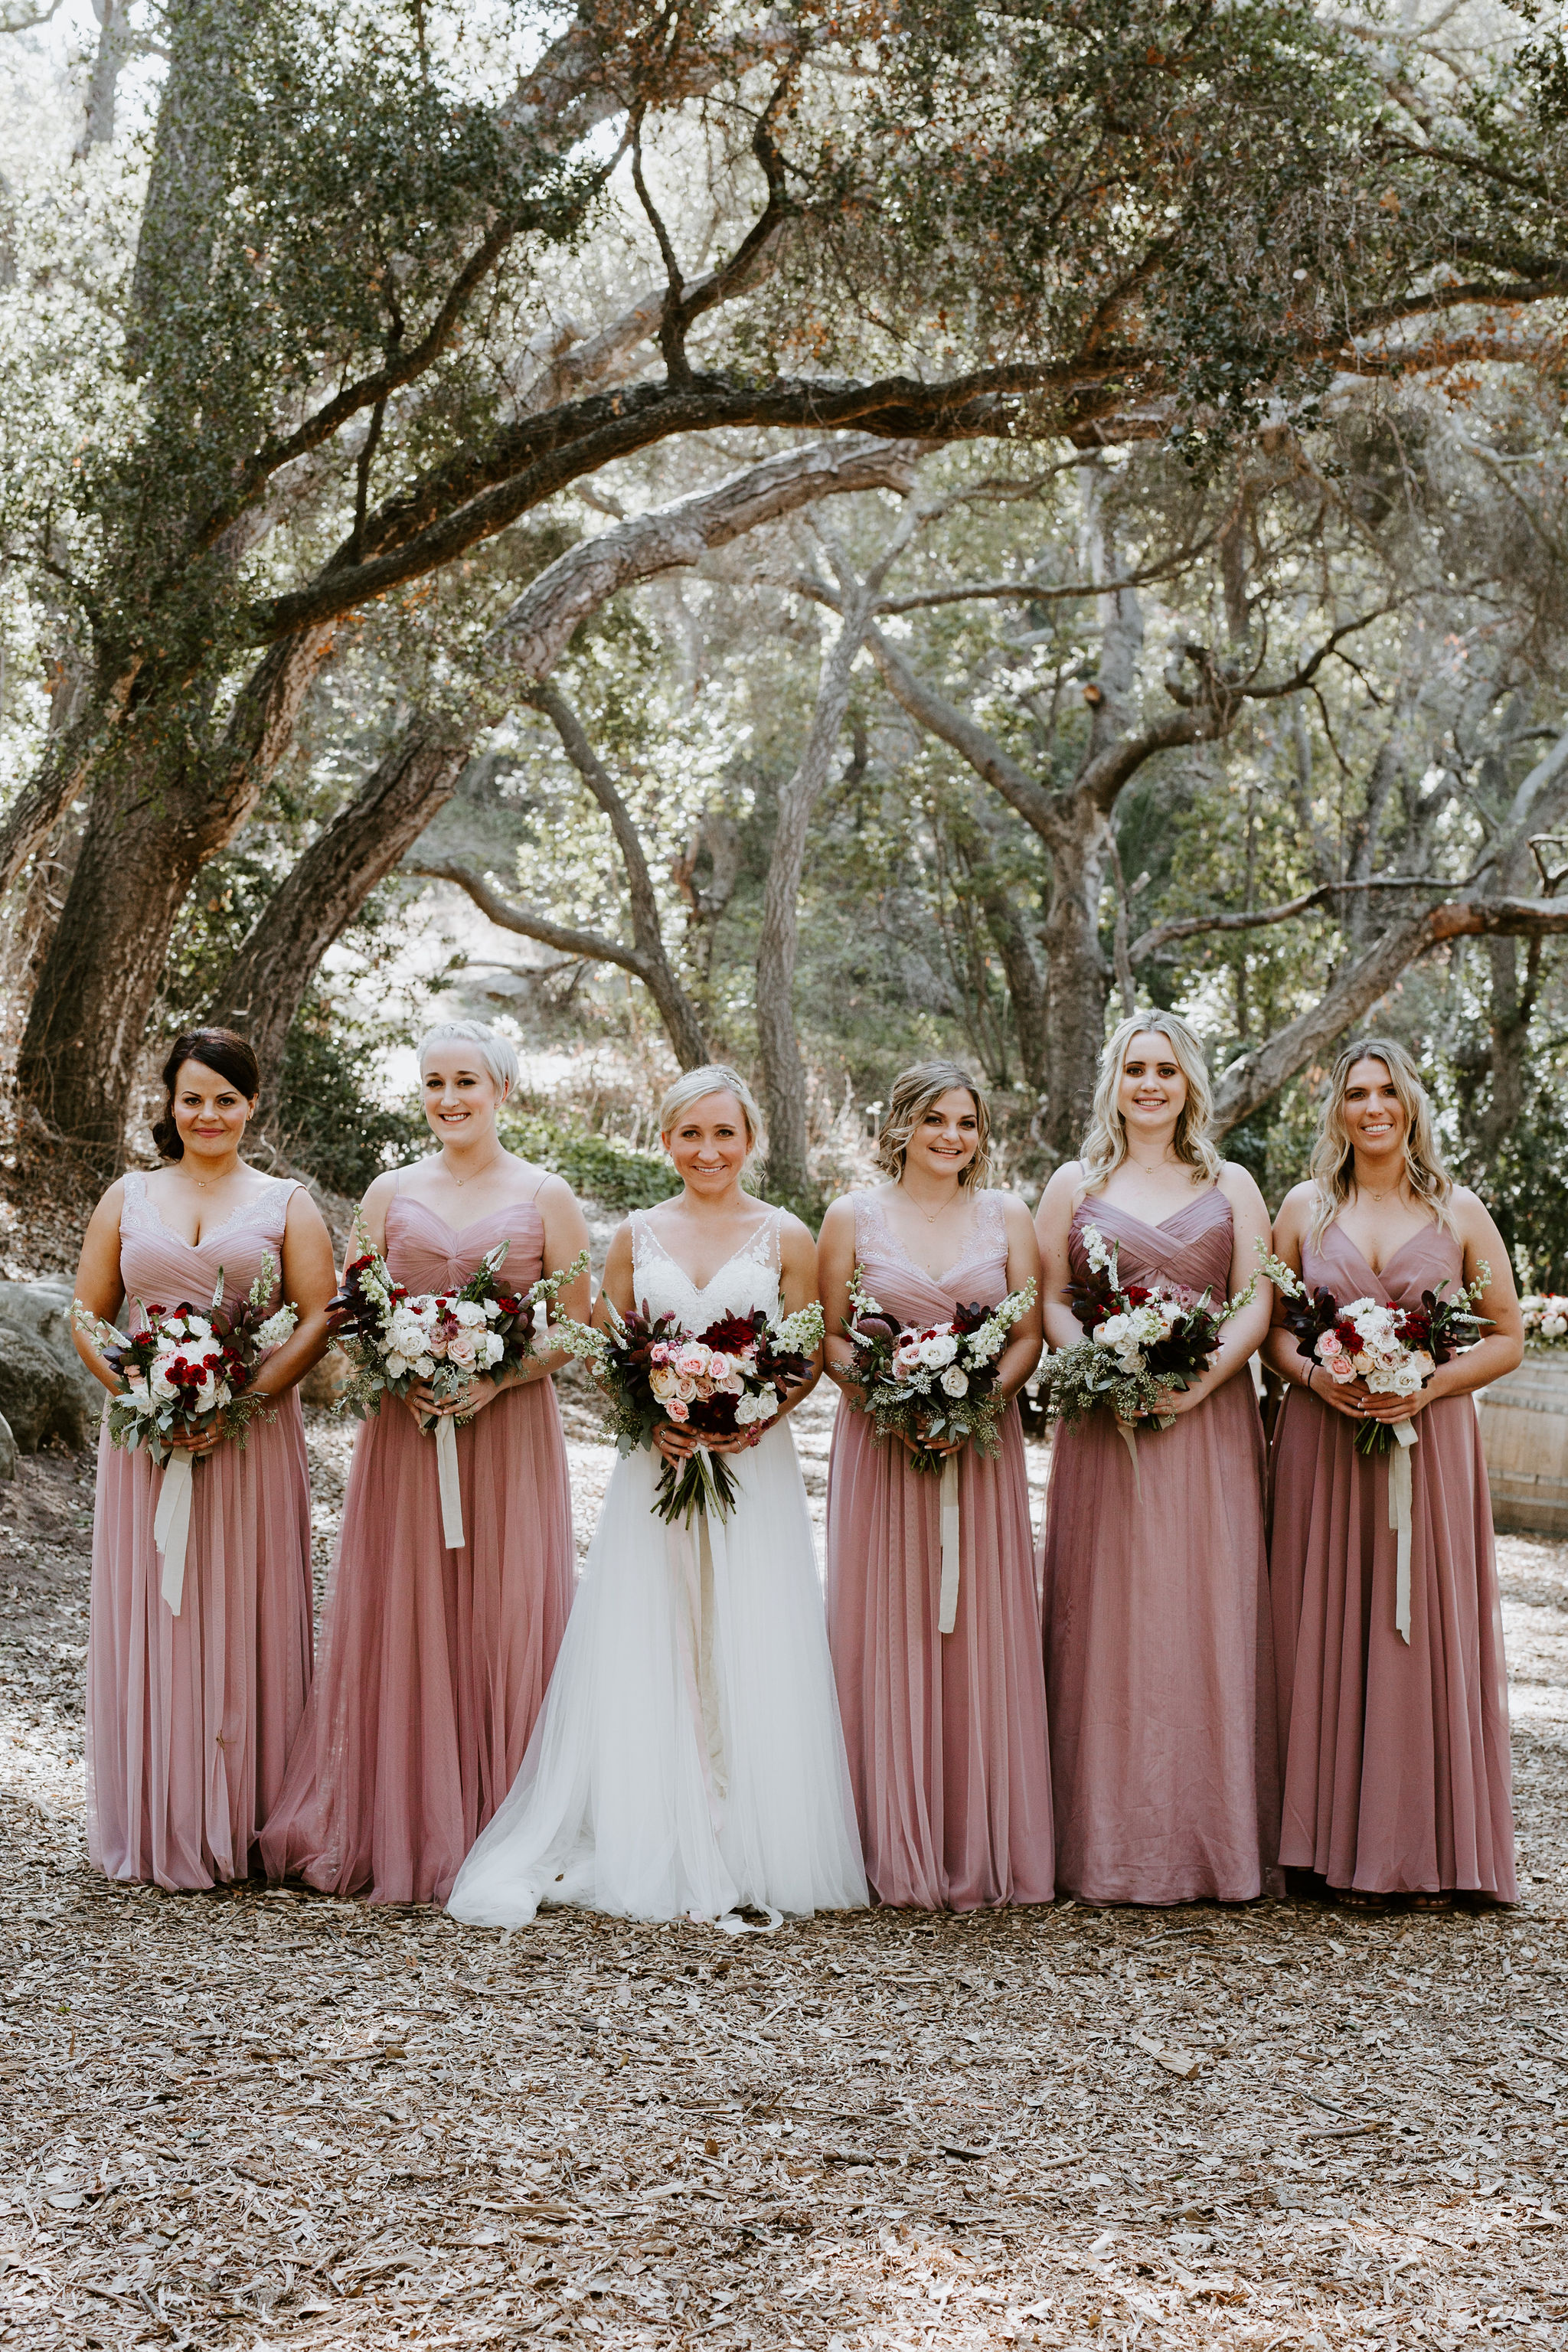 www.santabarbarawedding.com | Geoff and Lyndsi Photography | Santa Barbara Museum of Natural History | Jamie Mangone of LuJane Events | Topa Flora | Bride and Bridesmaids